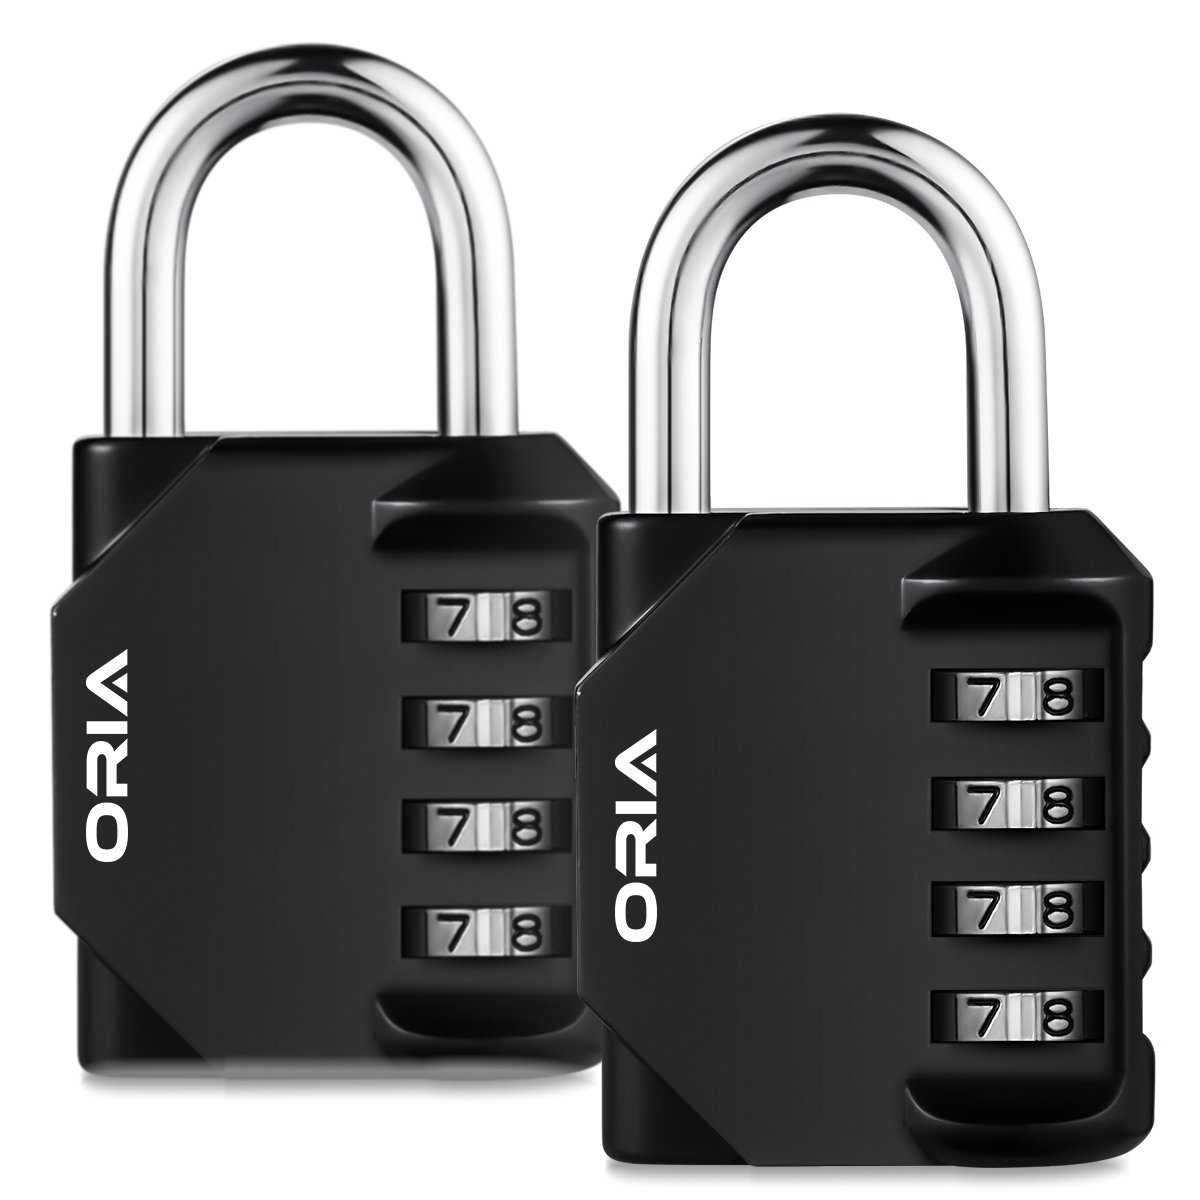 ORIA Combination Lock, 4 Digit Combination Padlock Set, Metal and Plated Steel Material for School, Employee, Gym or Sports Locker, Case, Toolbox, Fence, Hasp Cabinet and Storage, Pack of 2 by ORIA